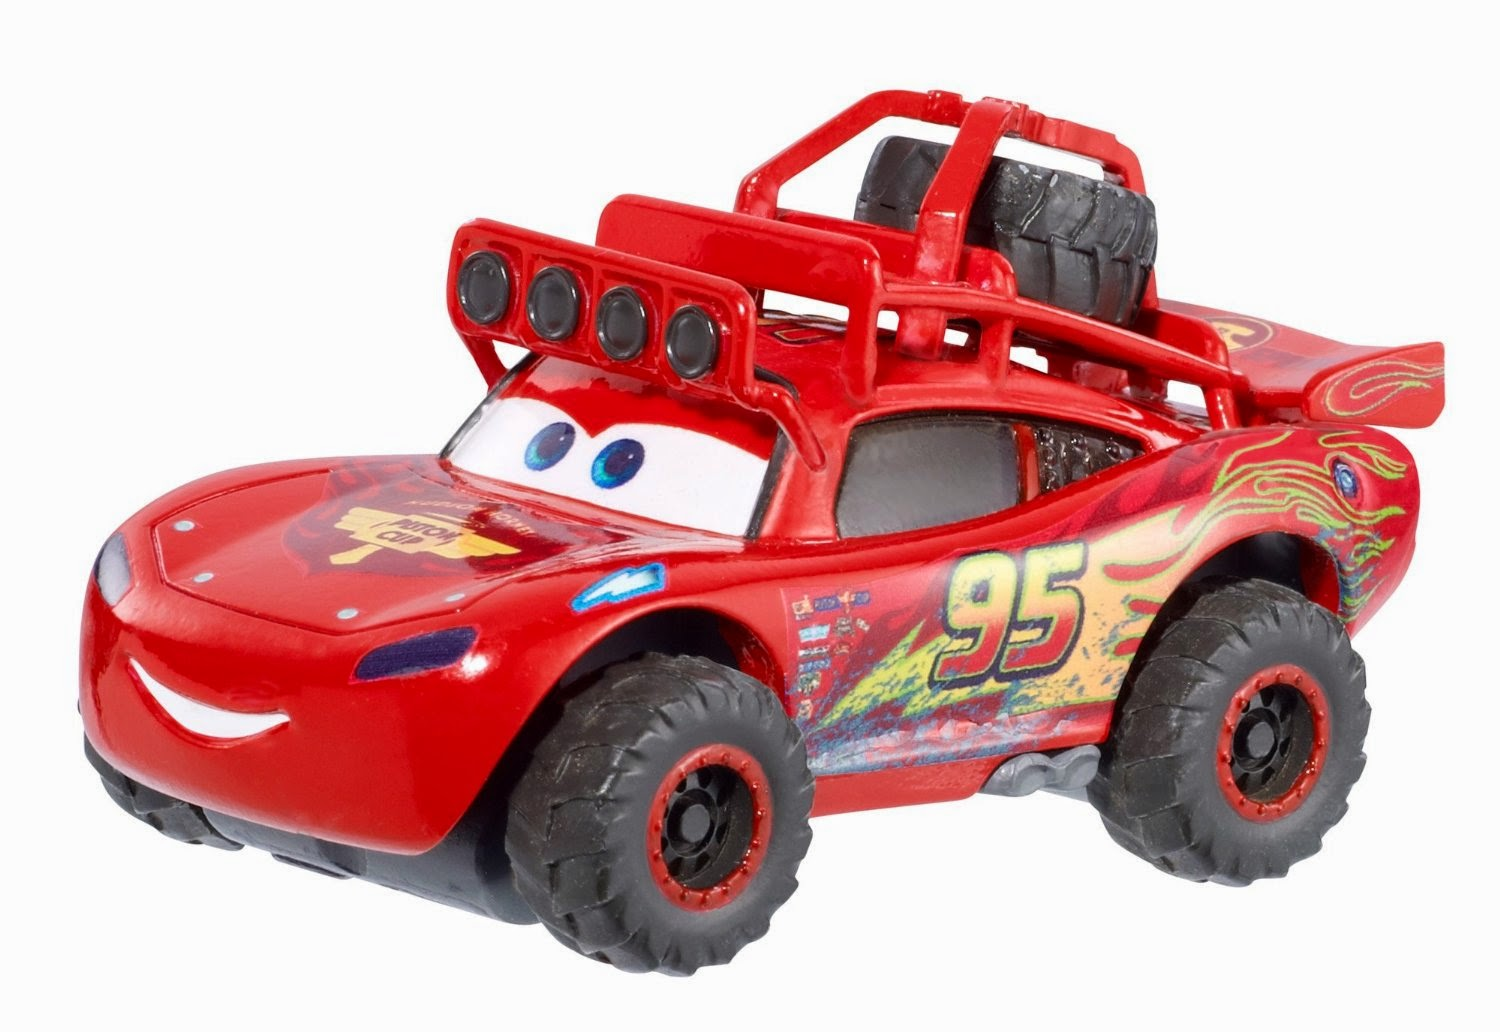 Cars 1 And 2 Toys : Disney pixar cars toys